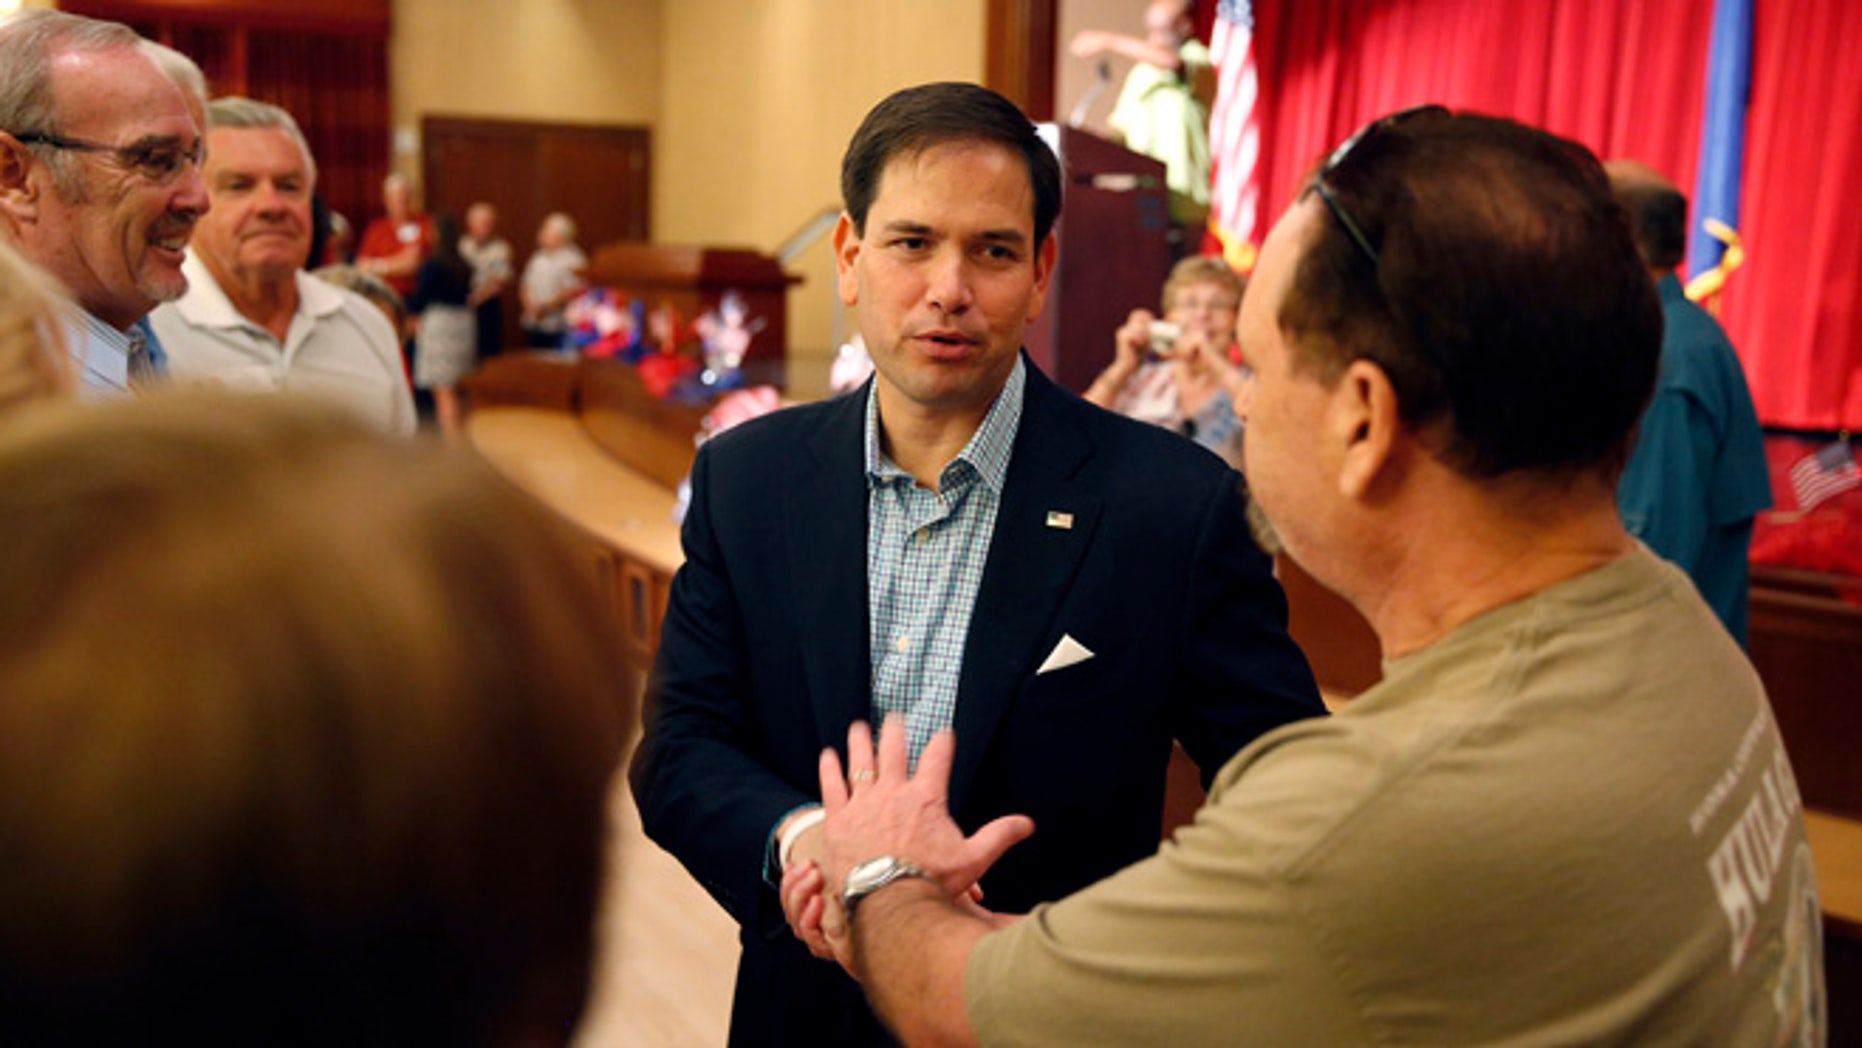 Republican presidential candidate Sen. Marco Rubio, R-Fla., shakes hands during a campaign event Saturday, July 11, 2015, in Henderson, Nev. (AP Photo/John Loche20